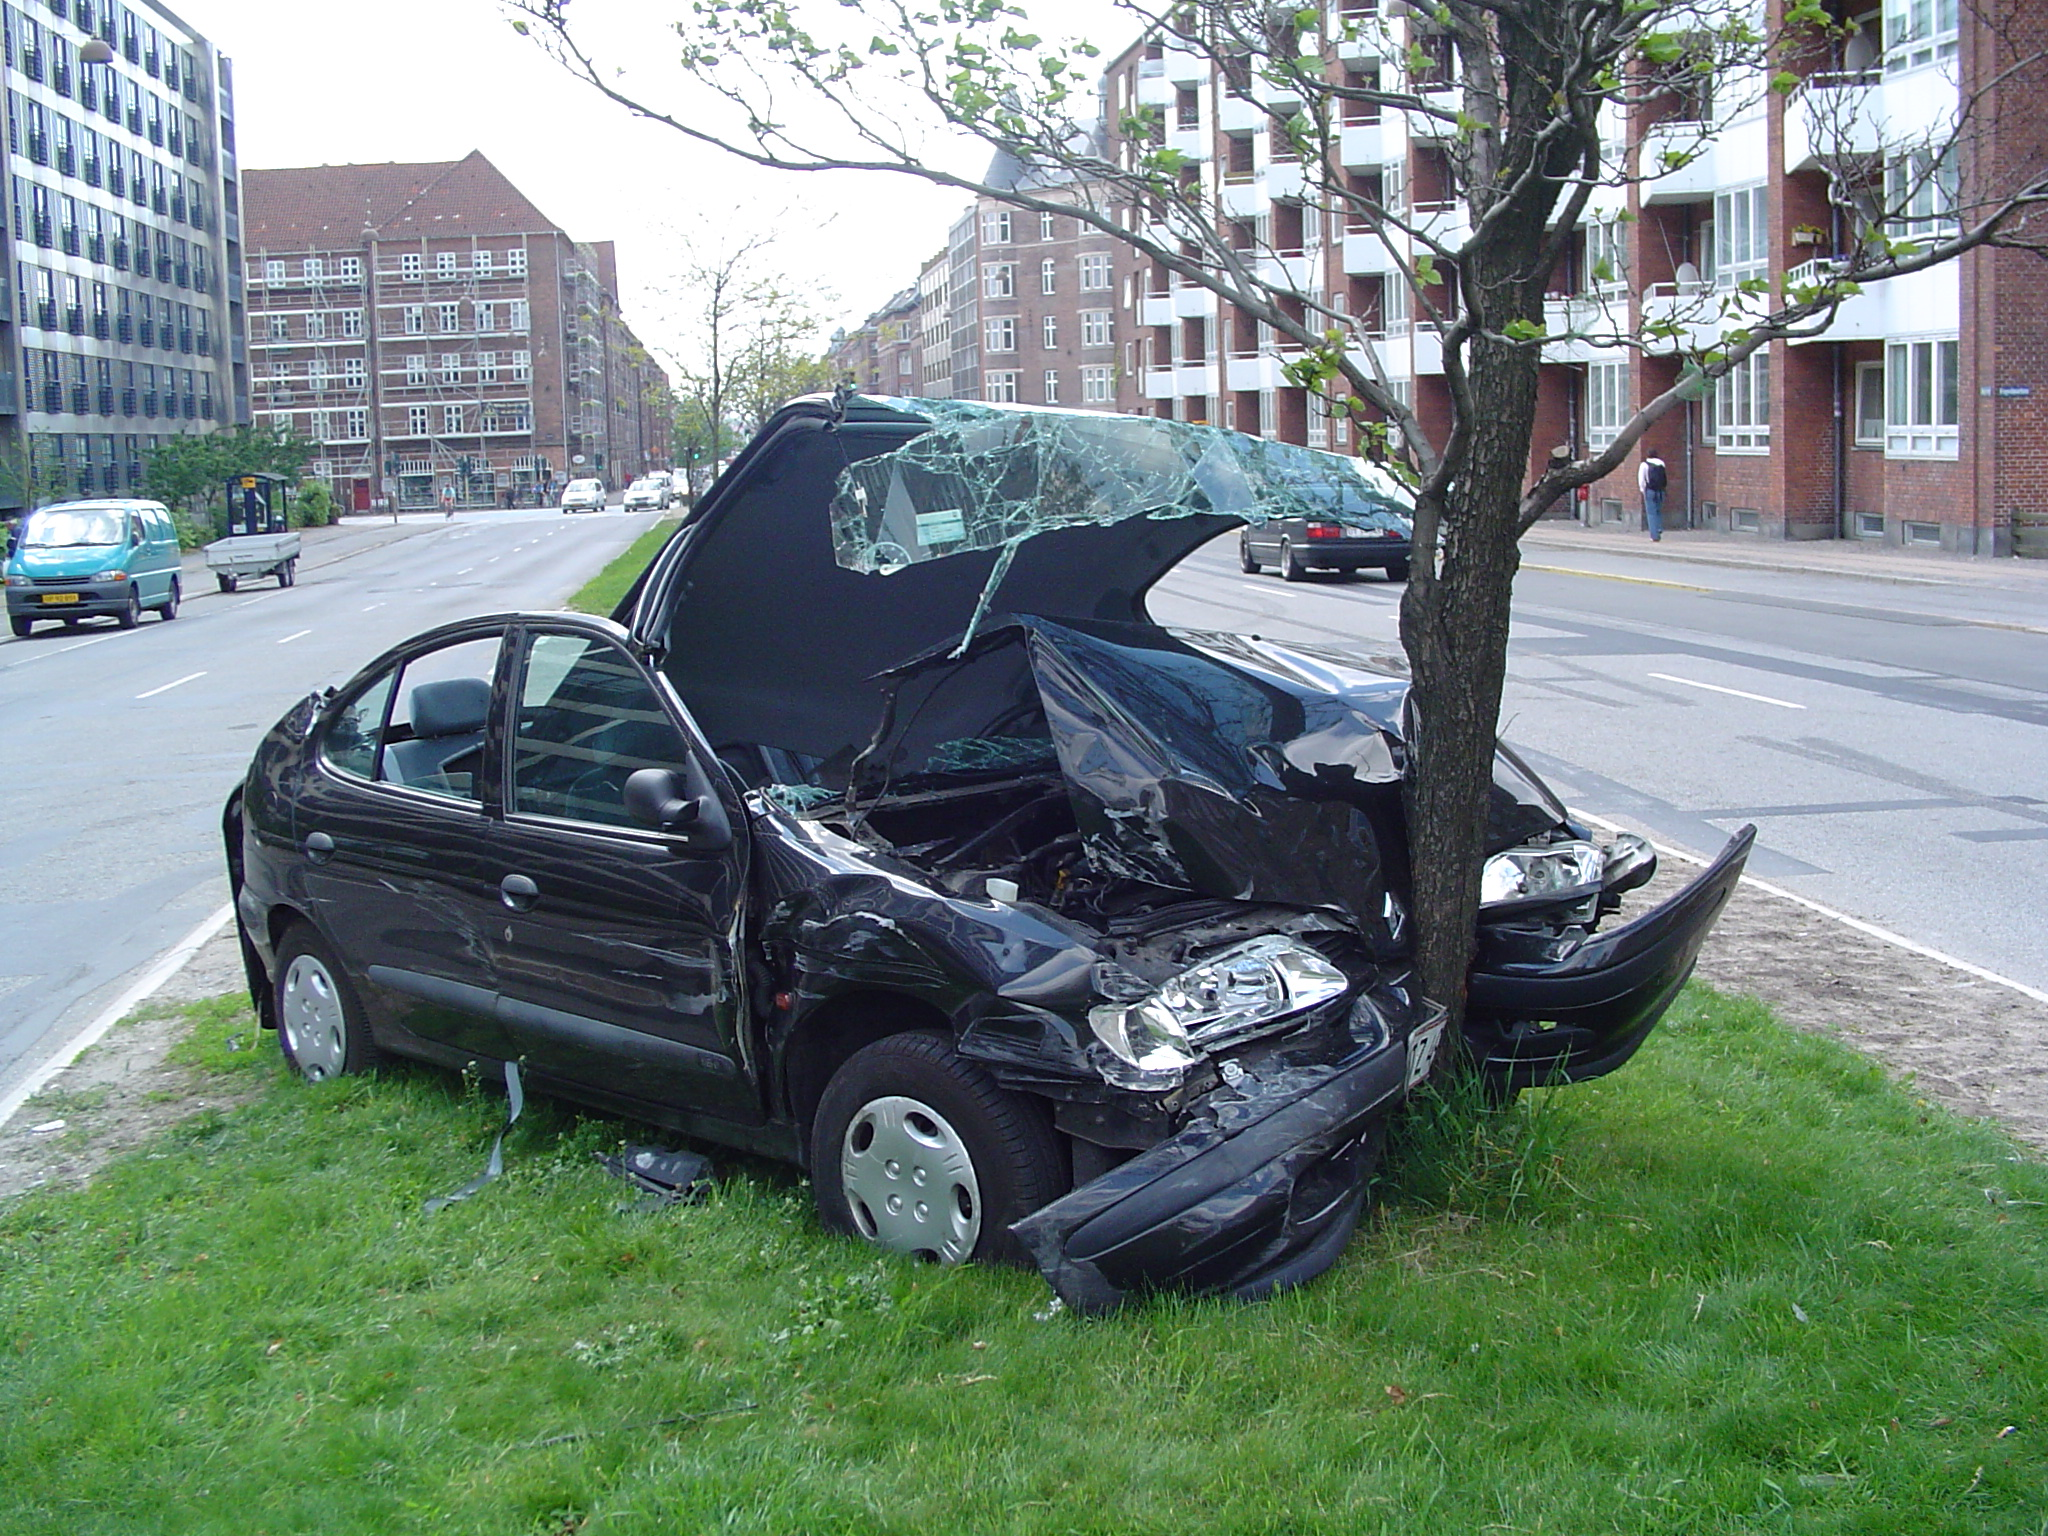 http://upload.wikimedia.org/wikipedia/commons/e/e1/Car_crash_1.jpg